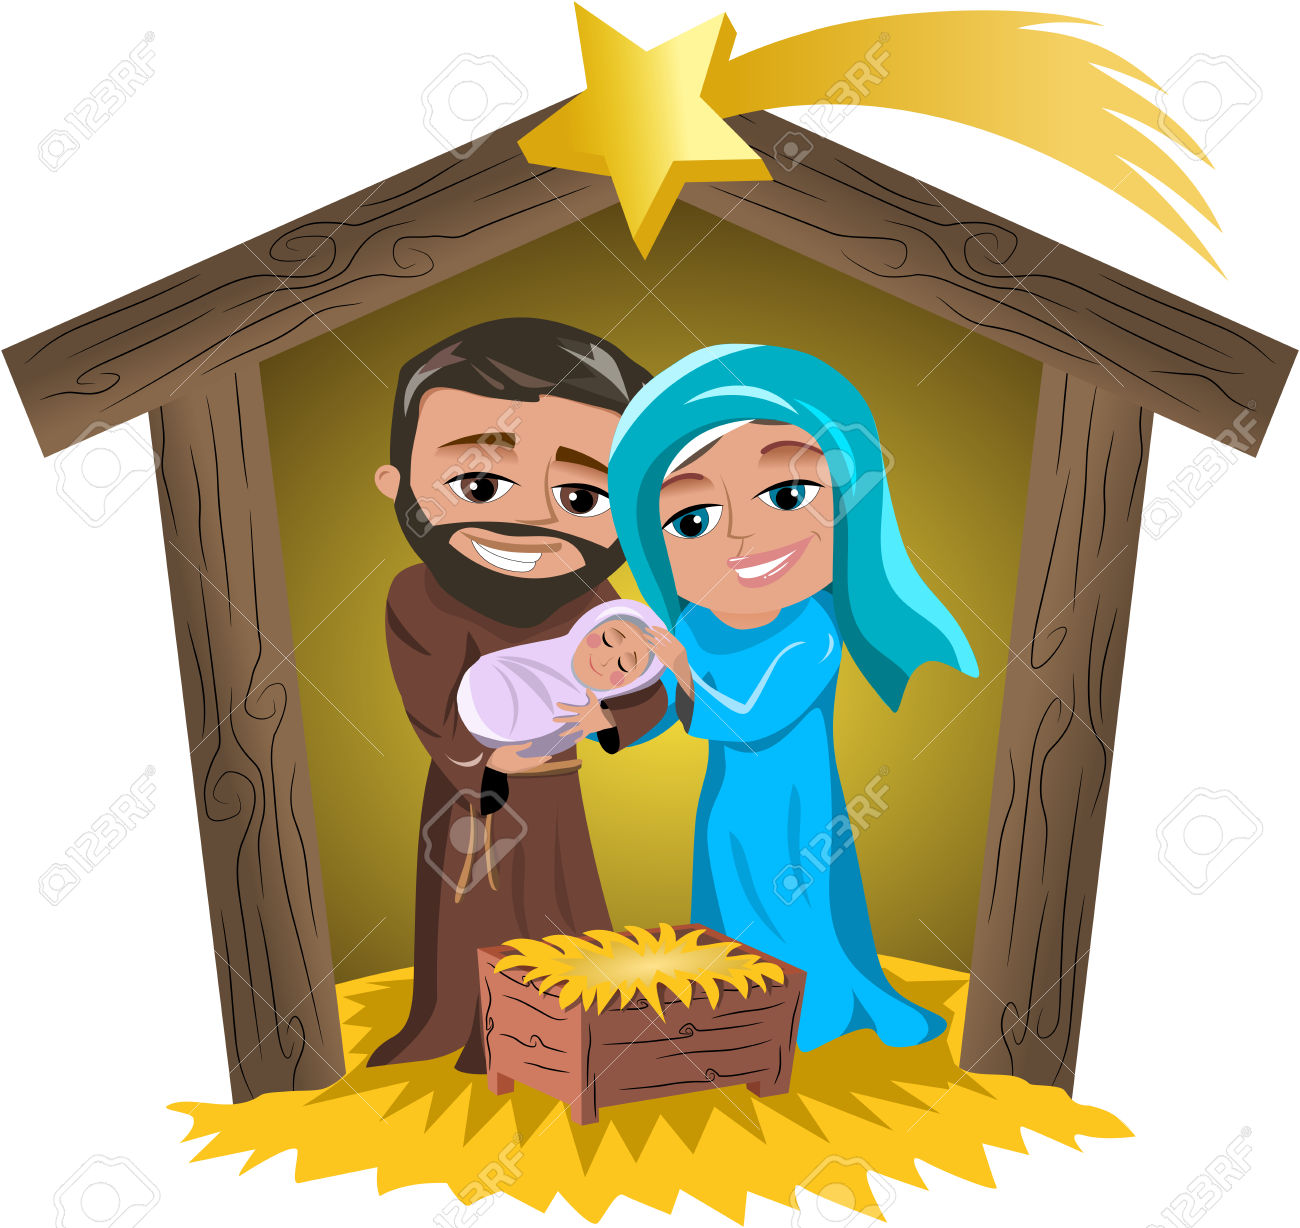 Kids carrying jesus mary and joseph clipart clip art library stock Christmas Nativity Scene With Mary And Joseph Holding Newborn ... clip art library stock